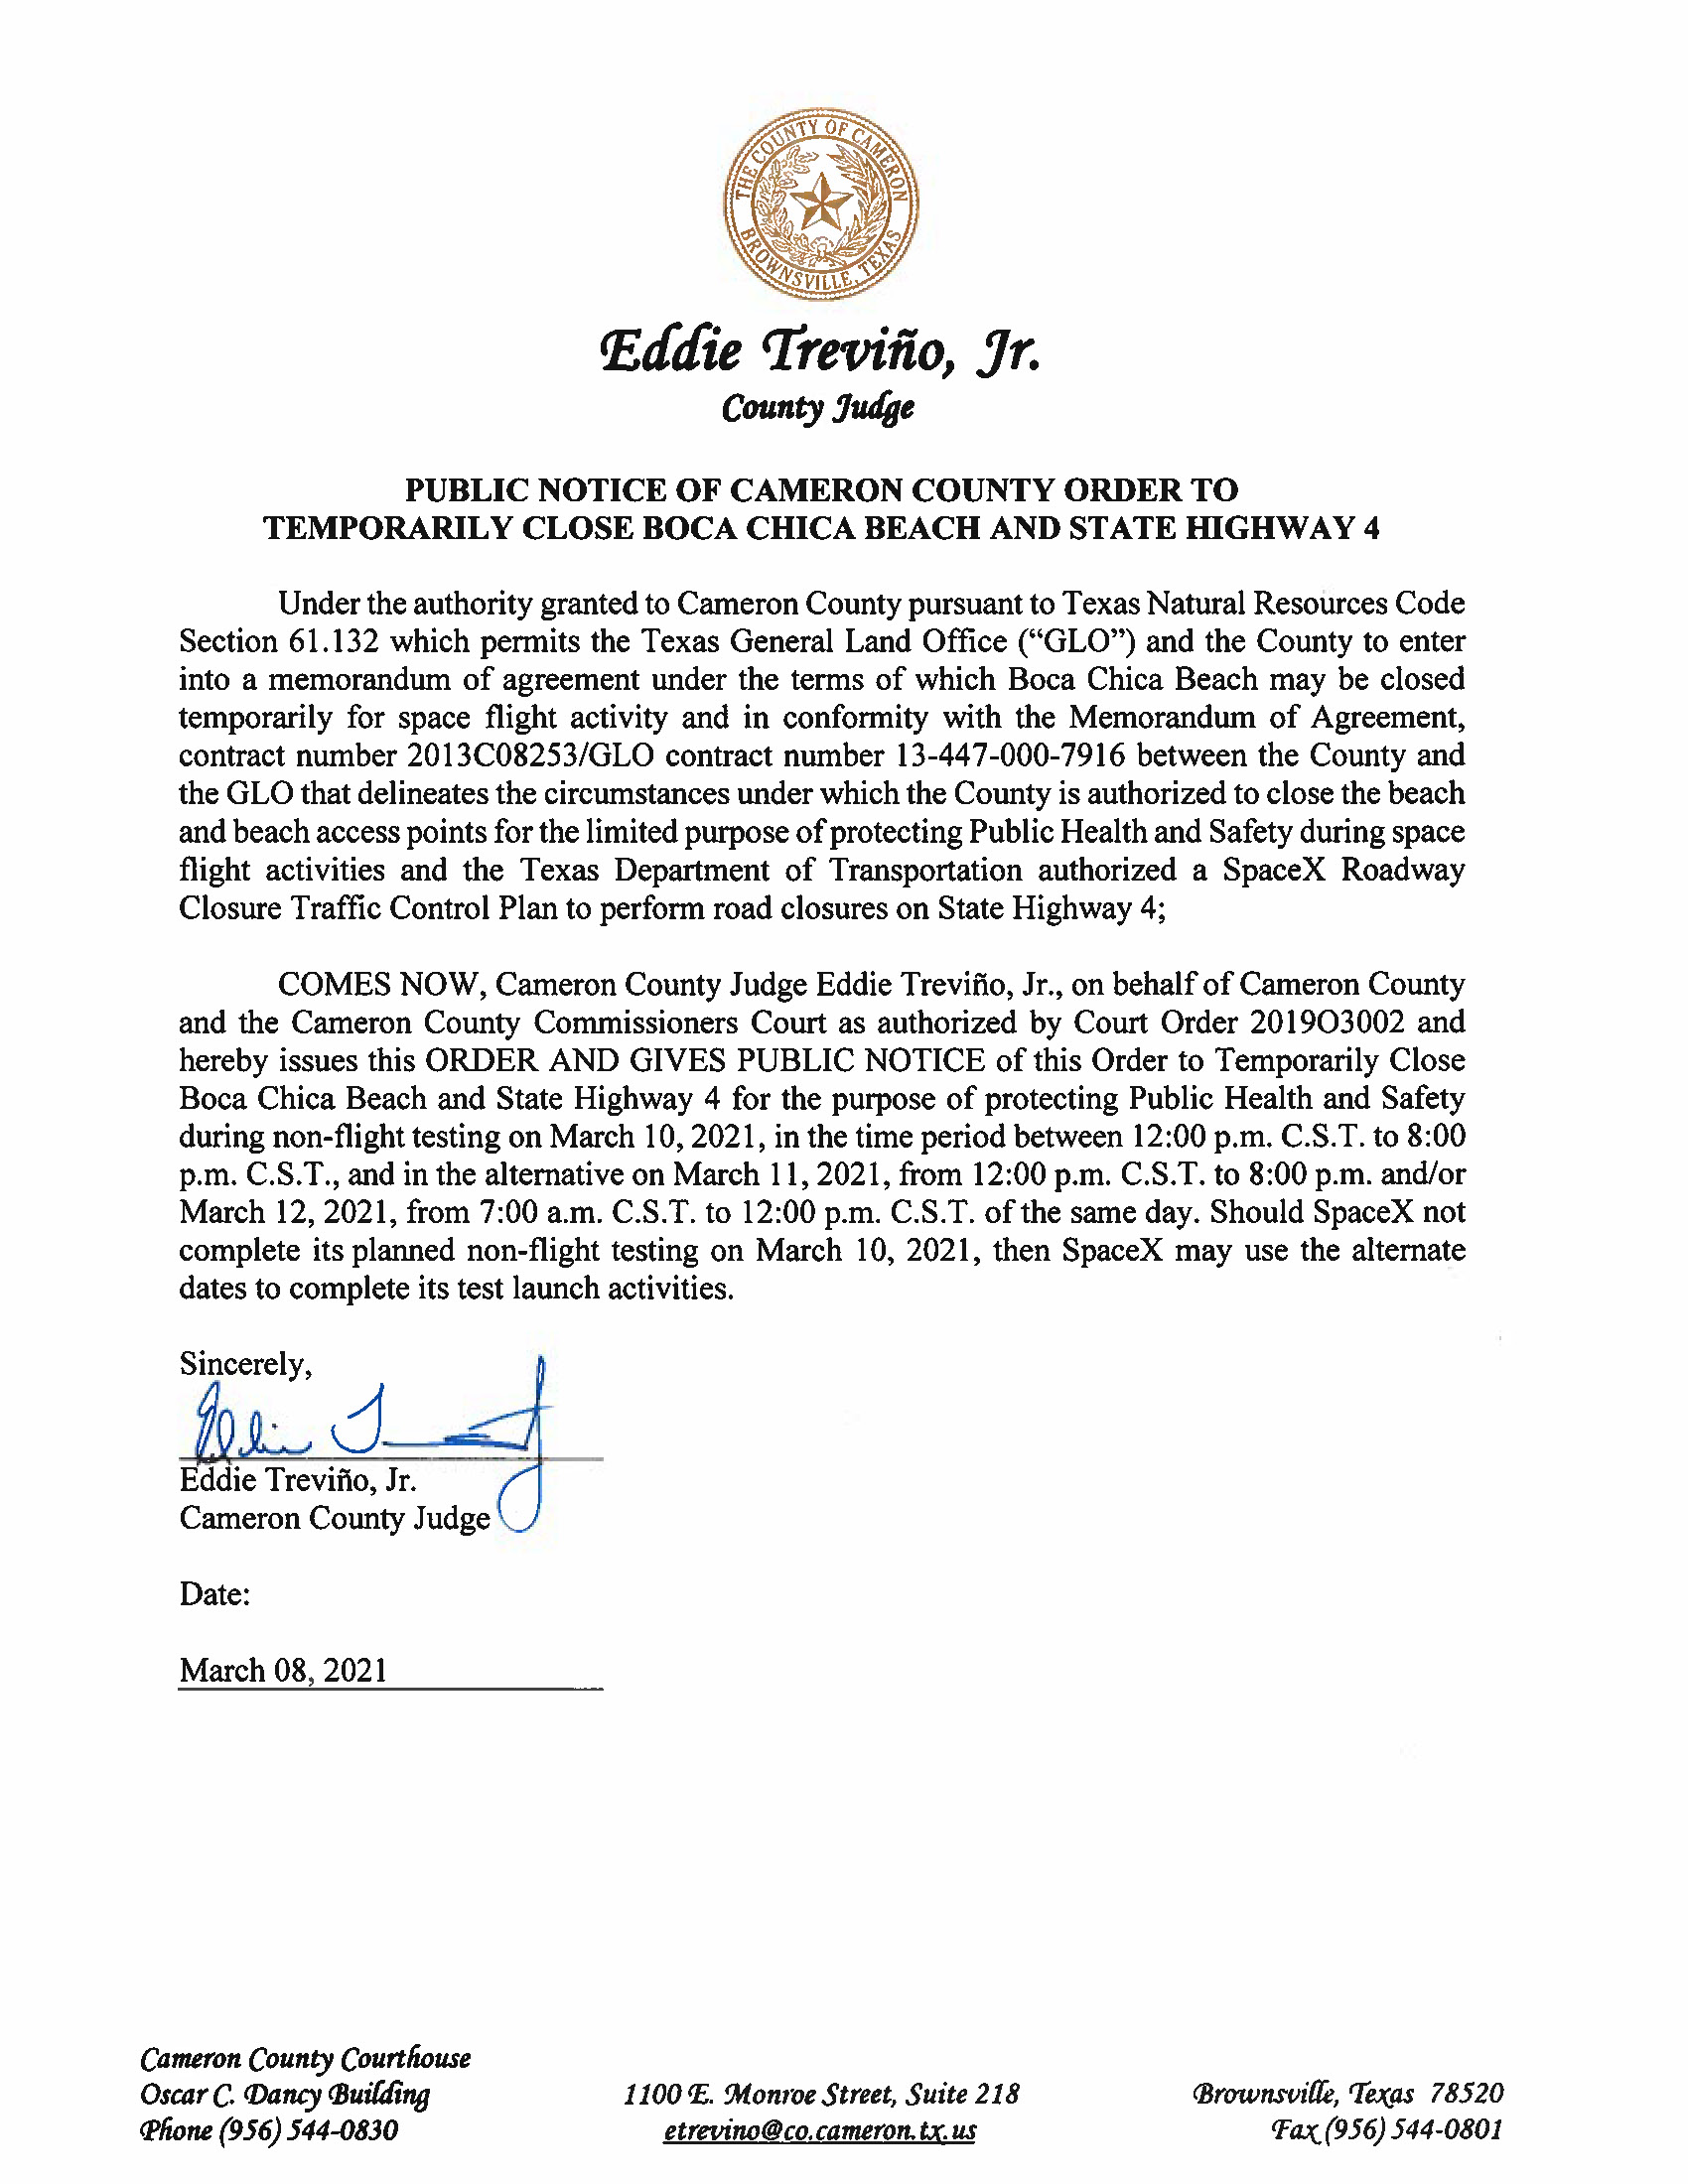 PUBLIC NOTICE OF CAMERON COUNTY ORDER TO TEMP. BEACH CLOSURE AND HWY.03.10.2021